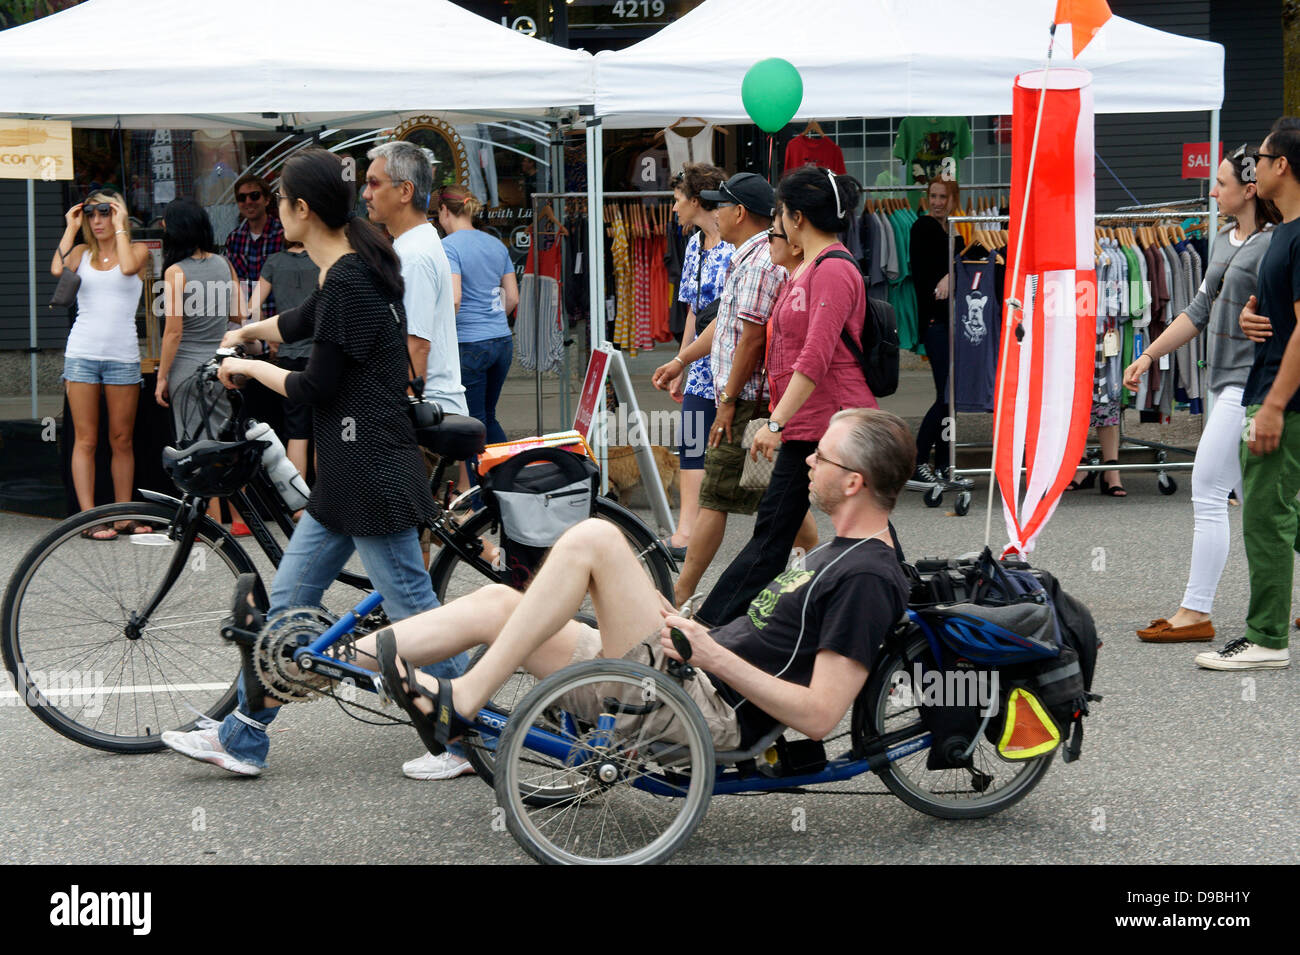 man-riding-a-reclining-bicycle-at-the-ca